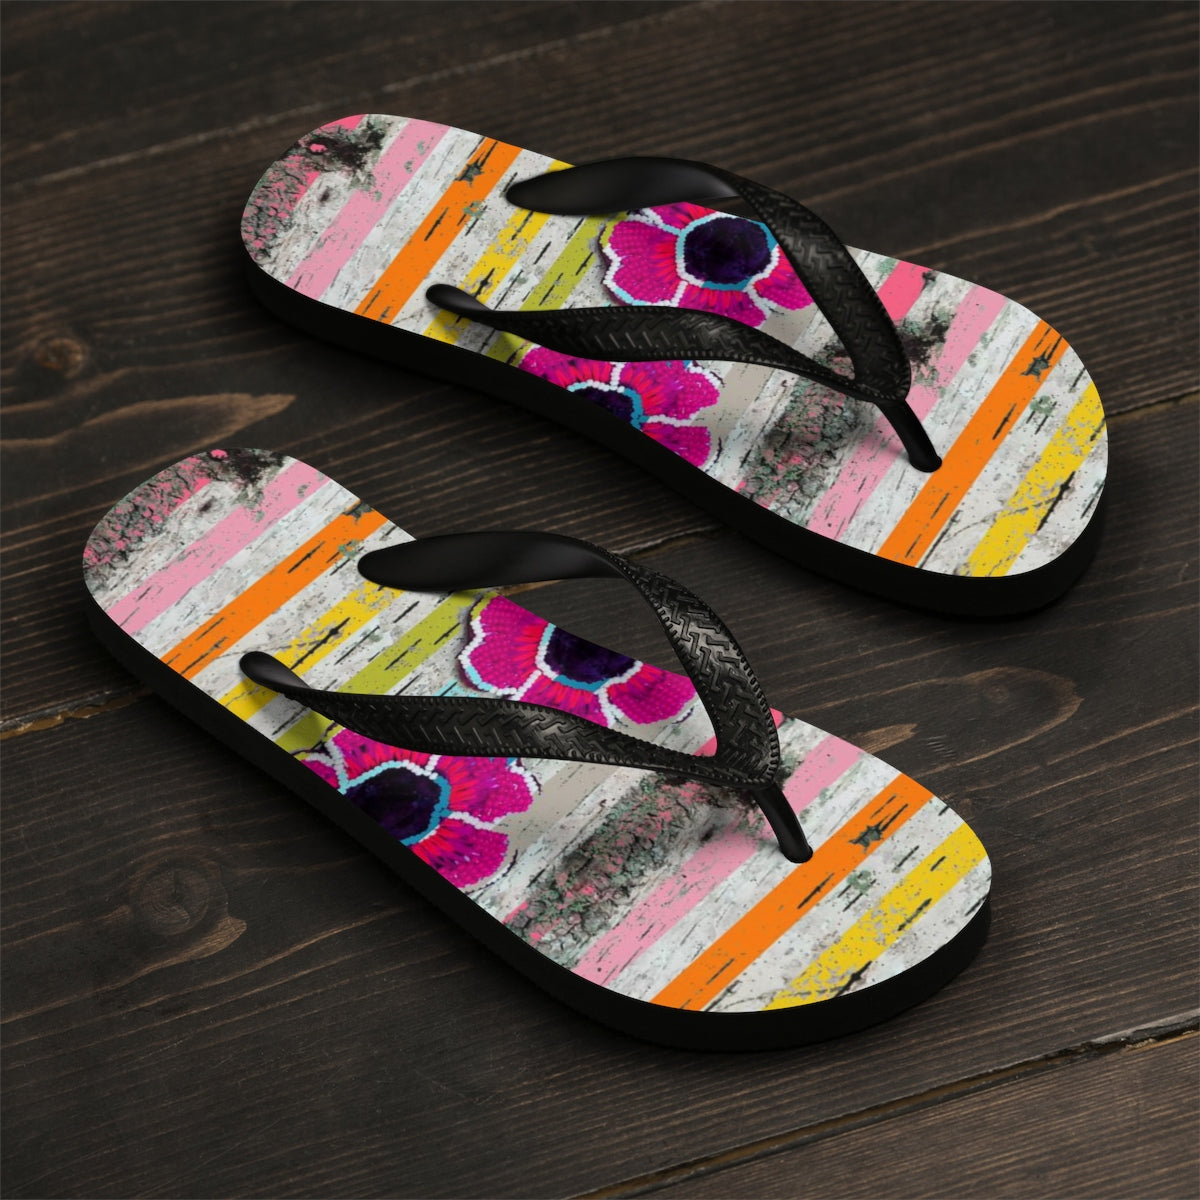 Striped Floral Fashion Sandals - https://www.ayashaloyadesigns.com/collections/indigenous-woodlands-collection-of-shoes